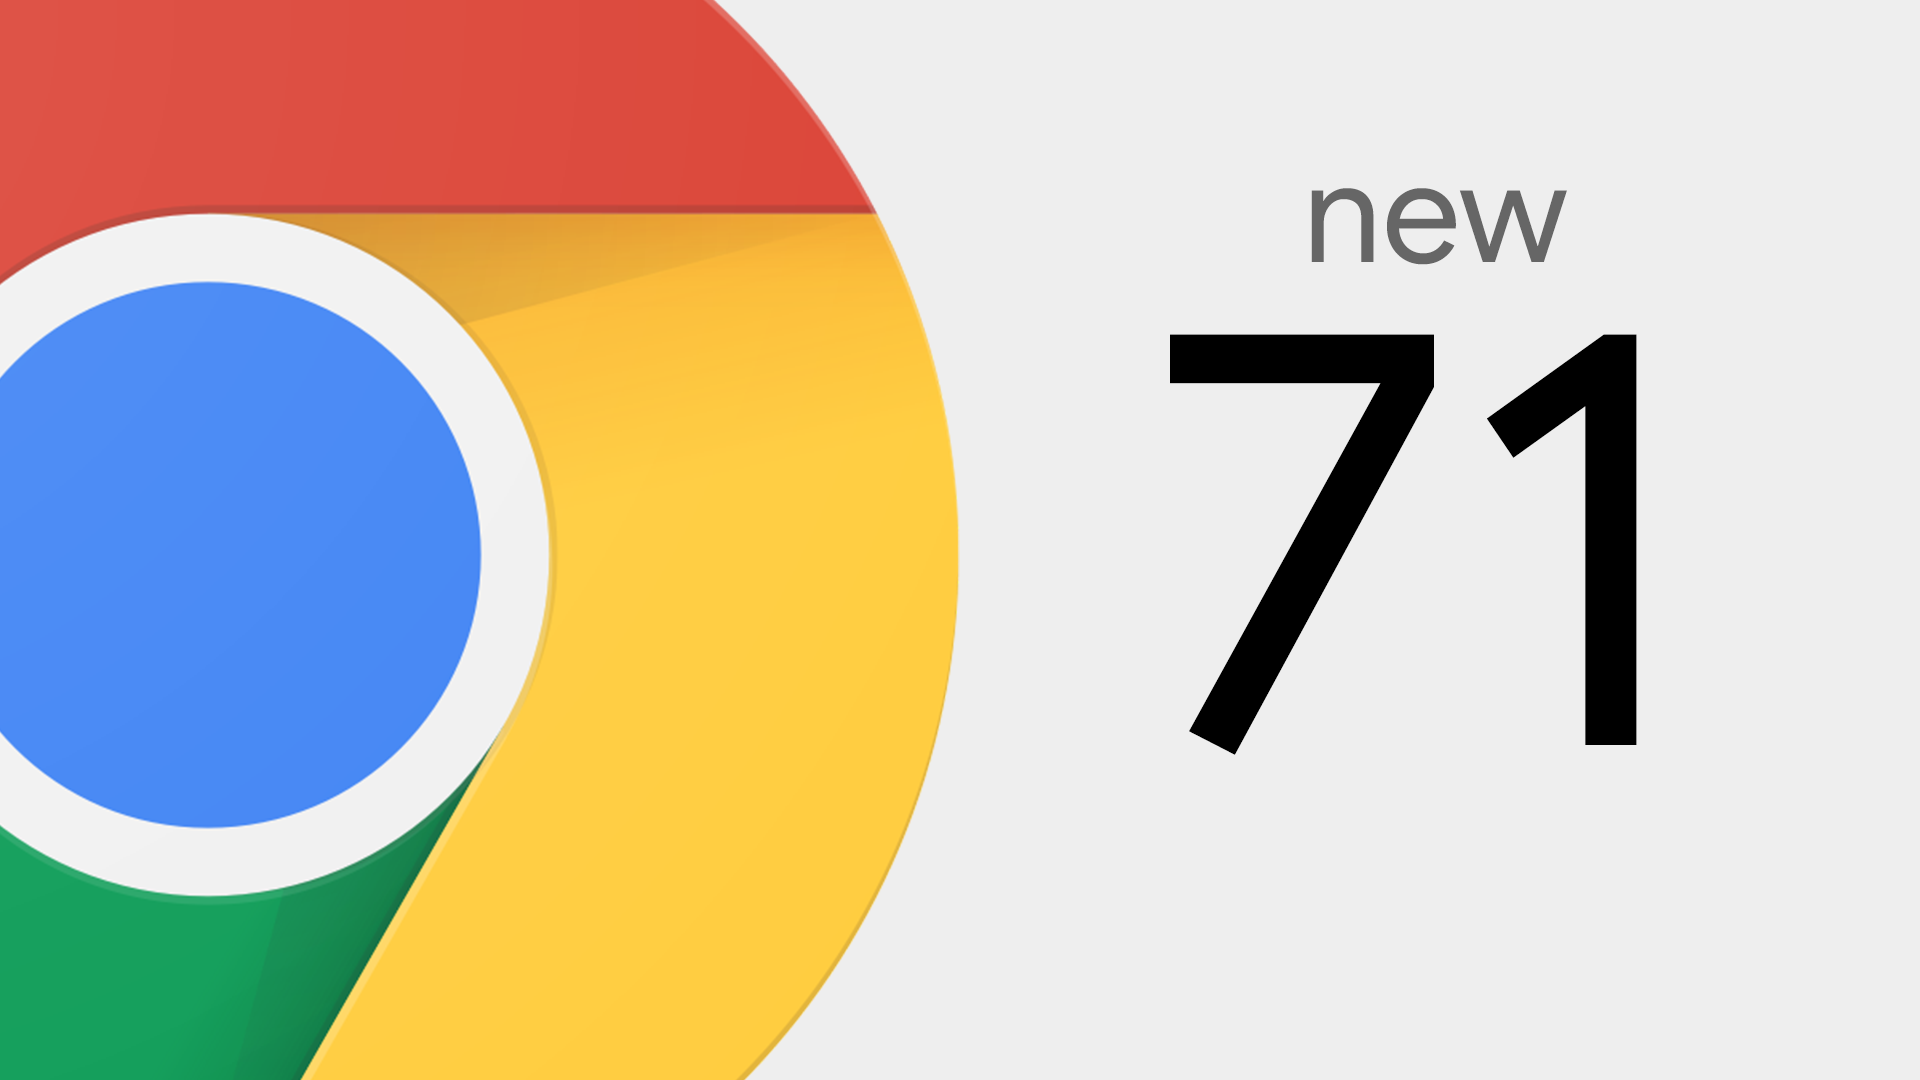 New in Chrome 71